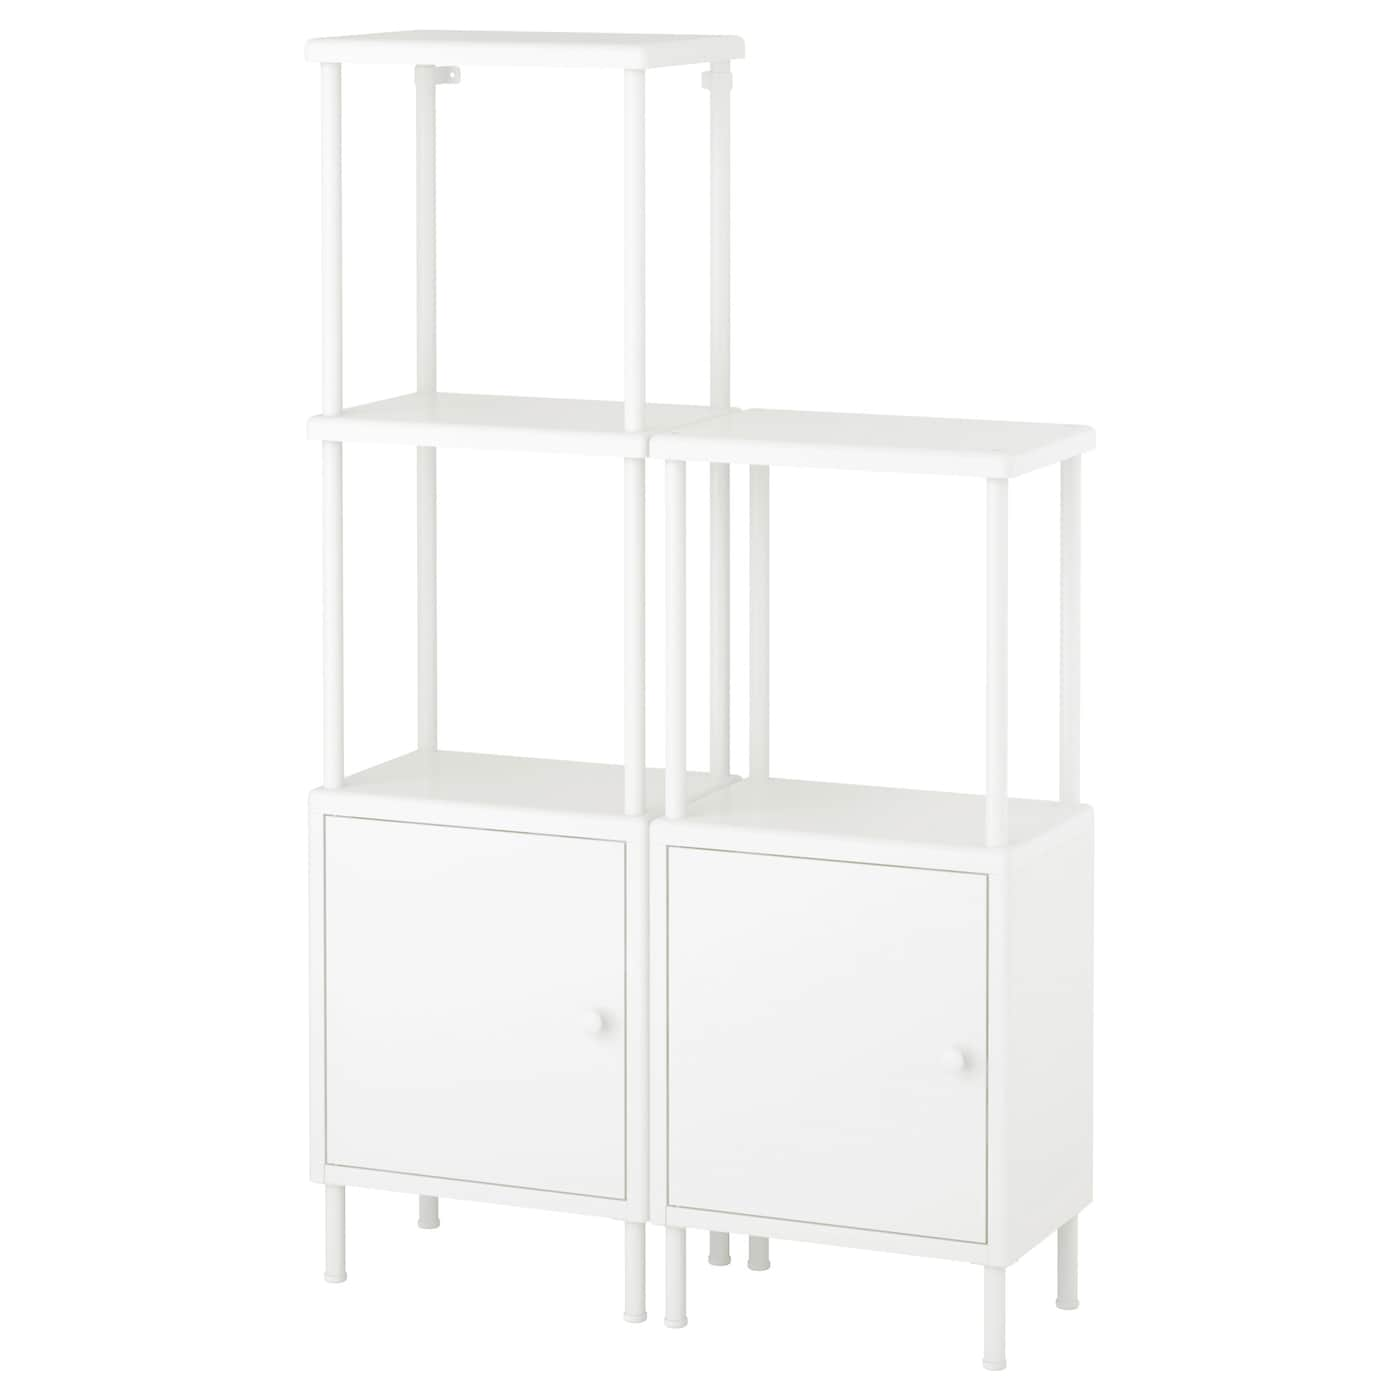 IKEA DYNAN shelving unit with 2 cabinets Perfect in a small bathroom.